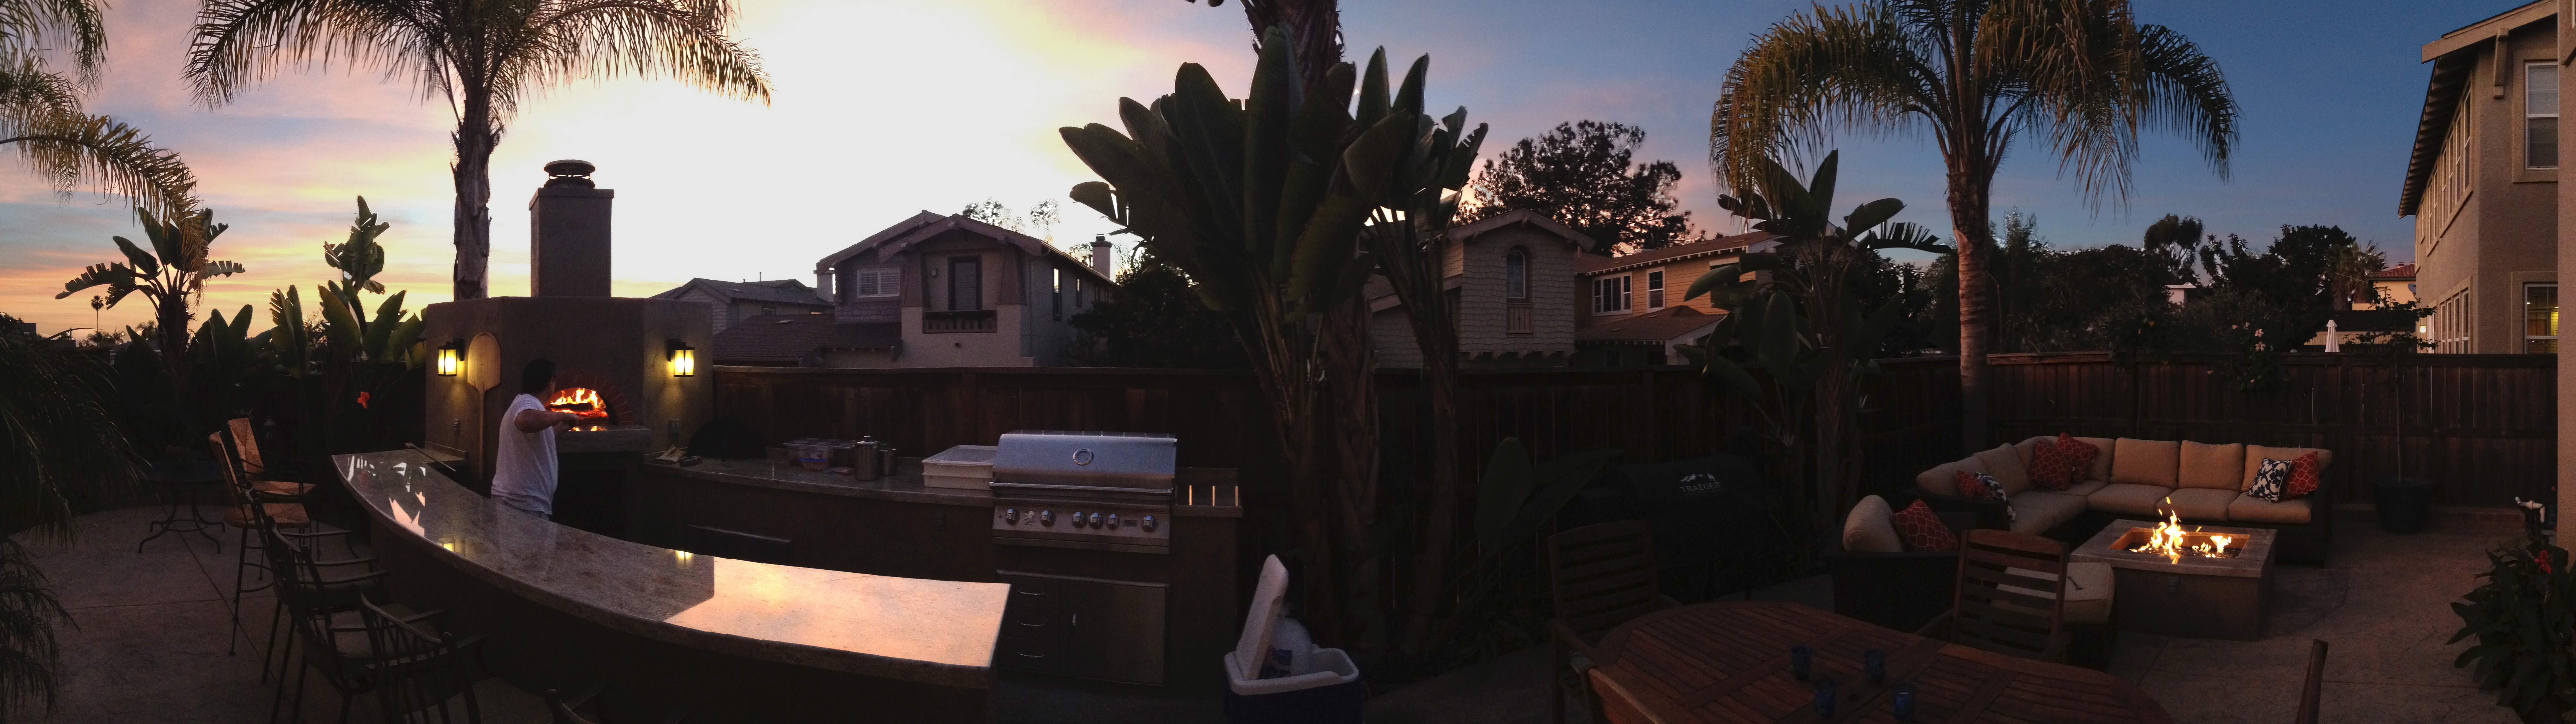 Encinitas Backyard 2